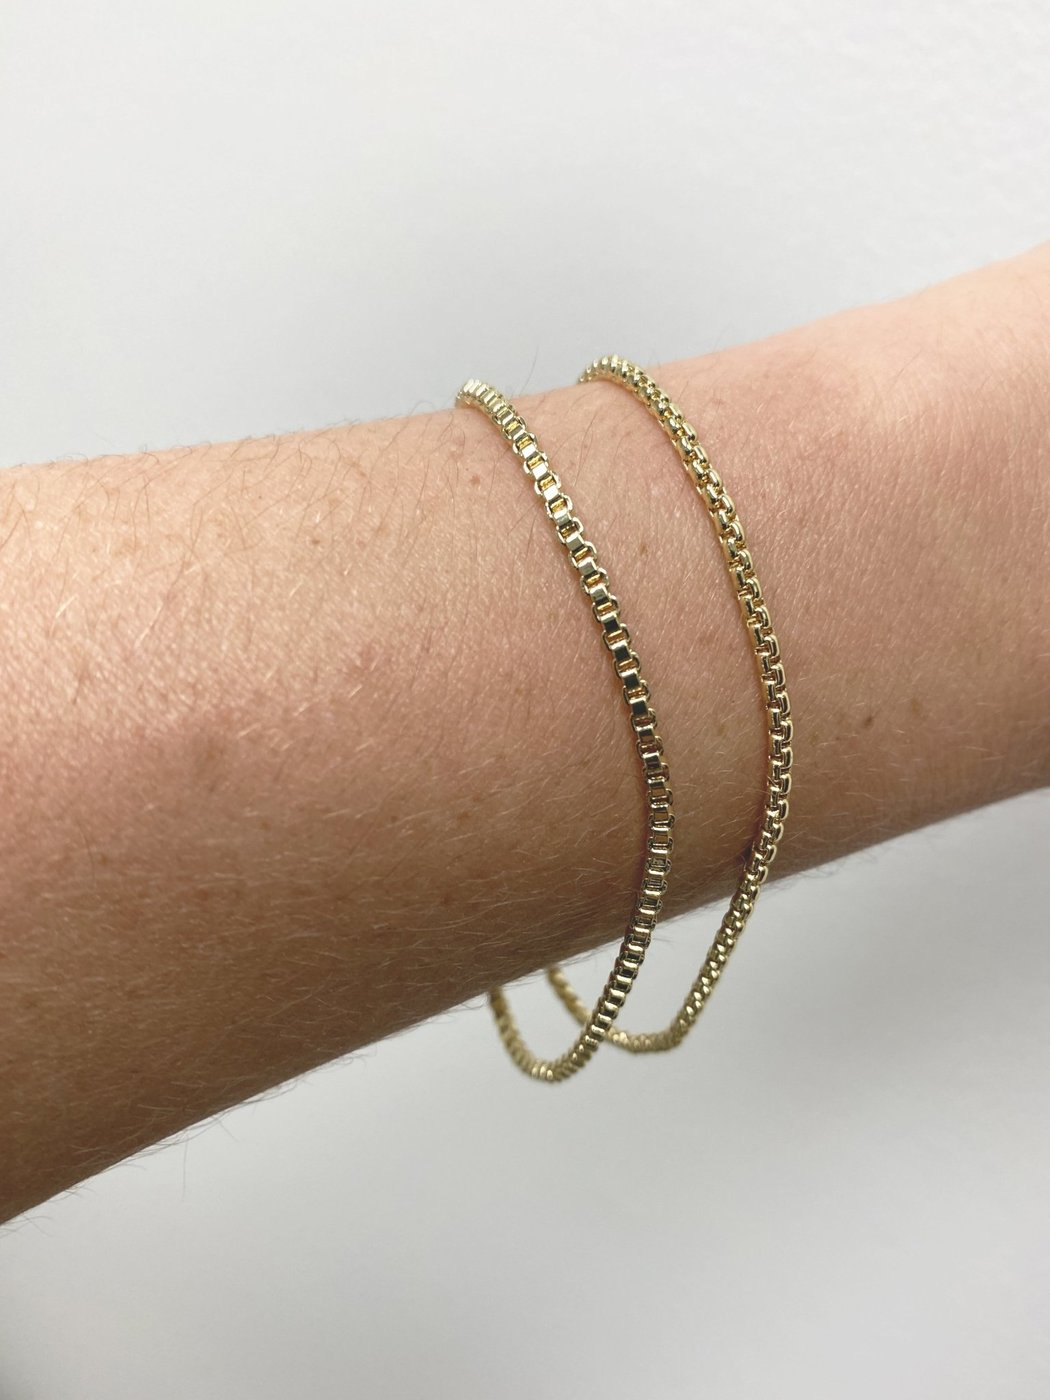 Machete - Box Chain Bracelet Round in 14K Gold